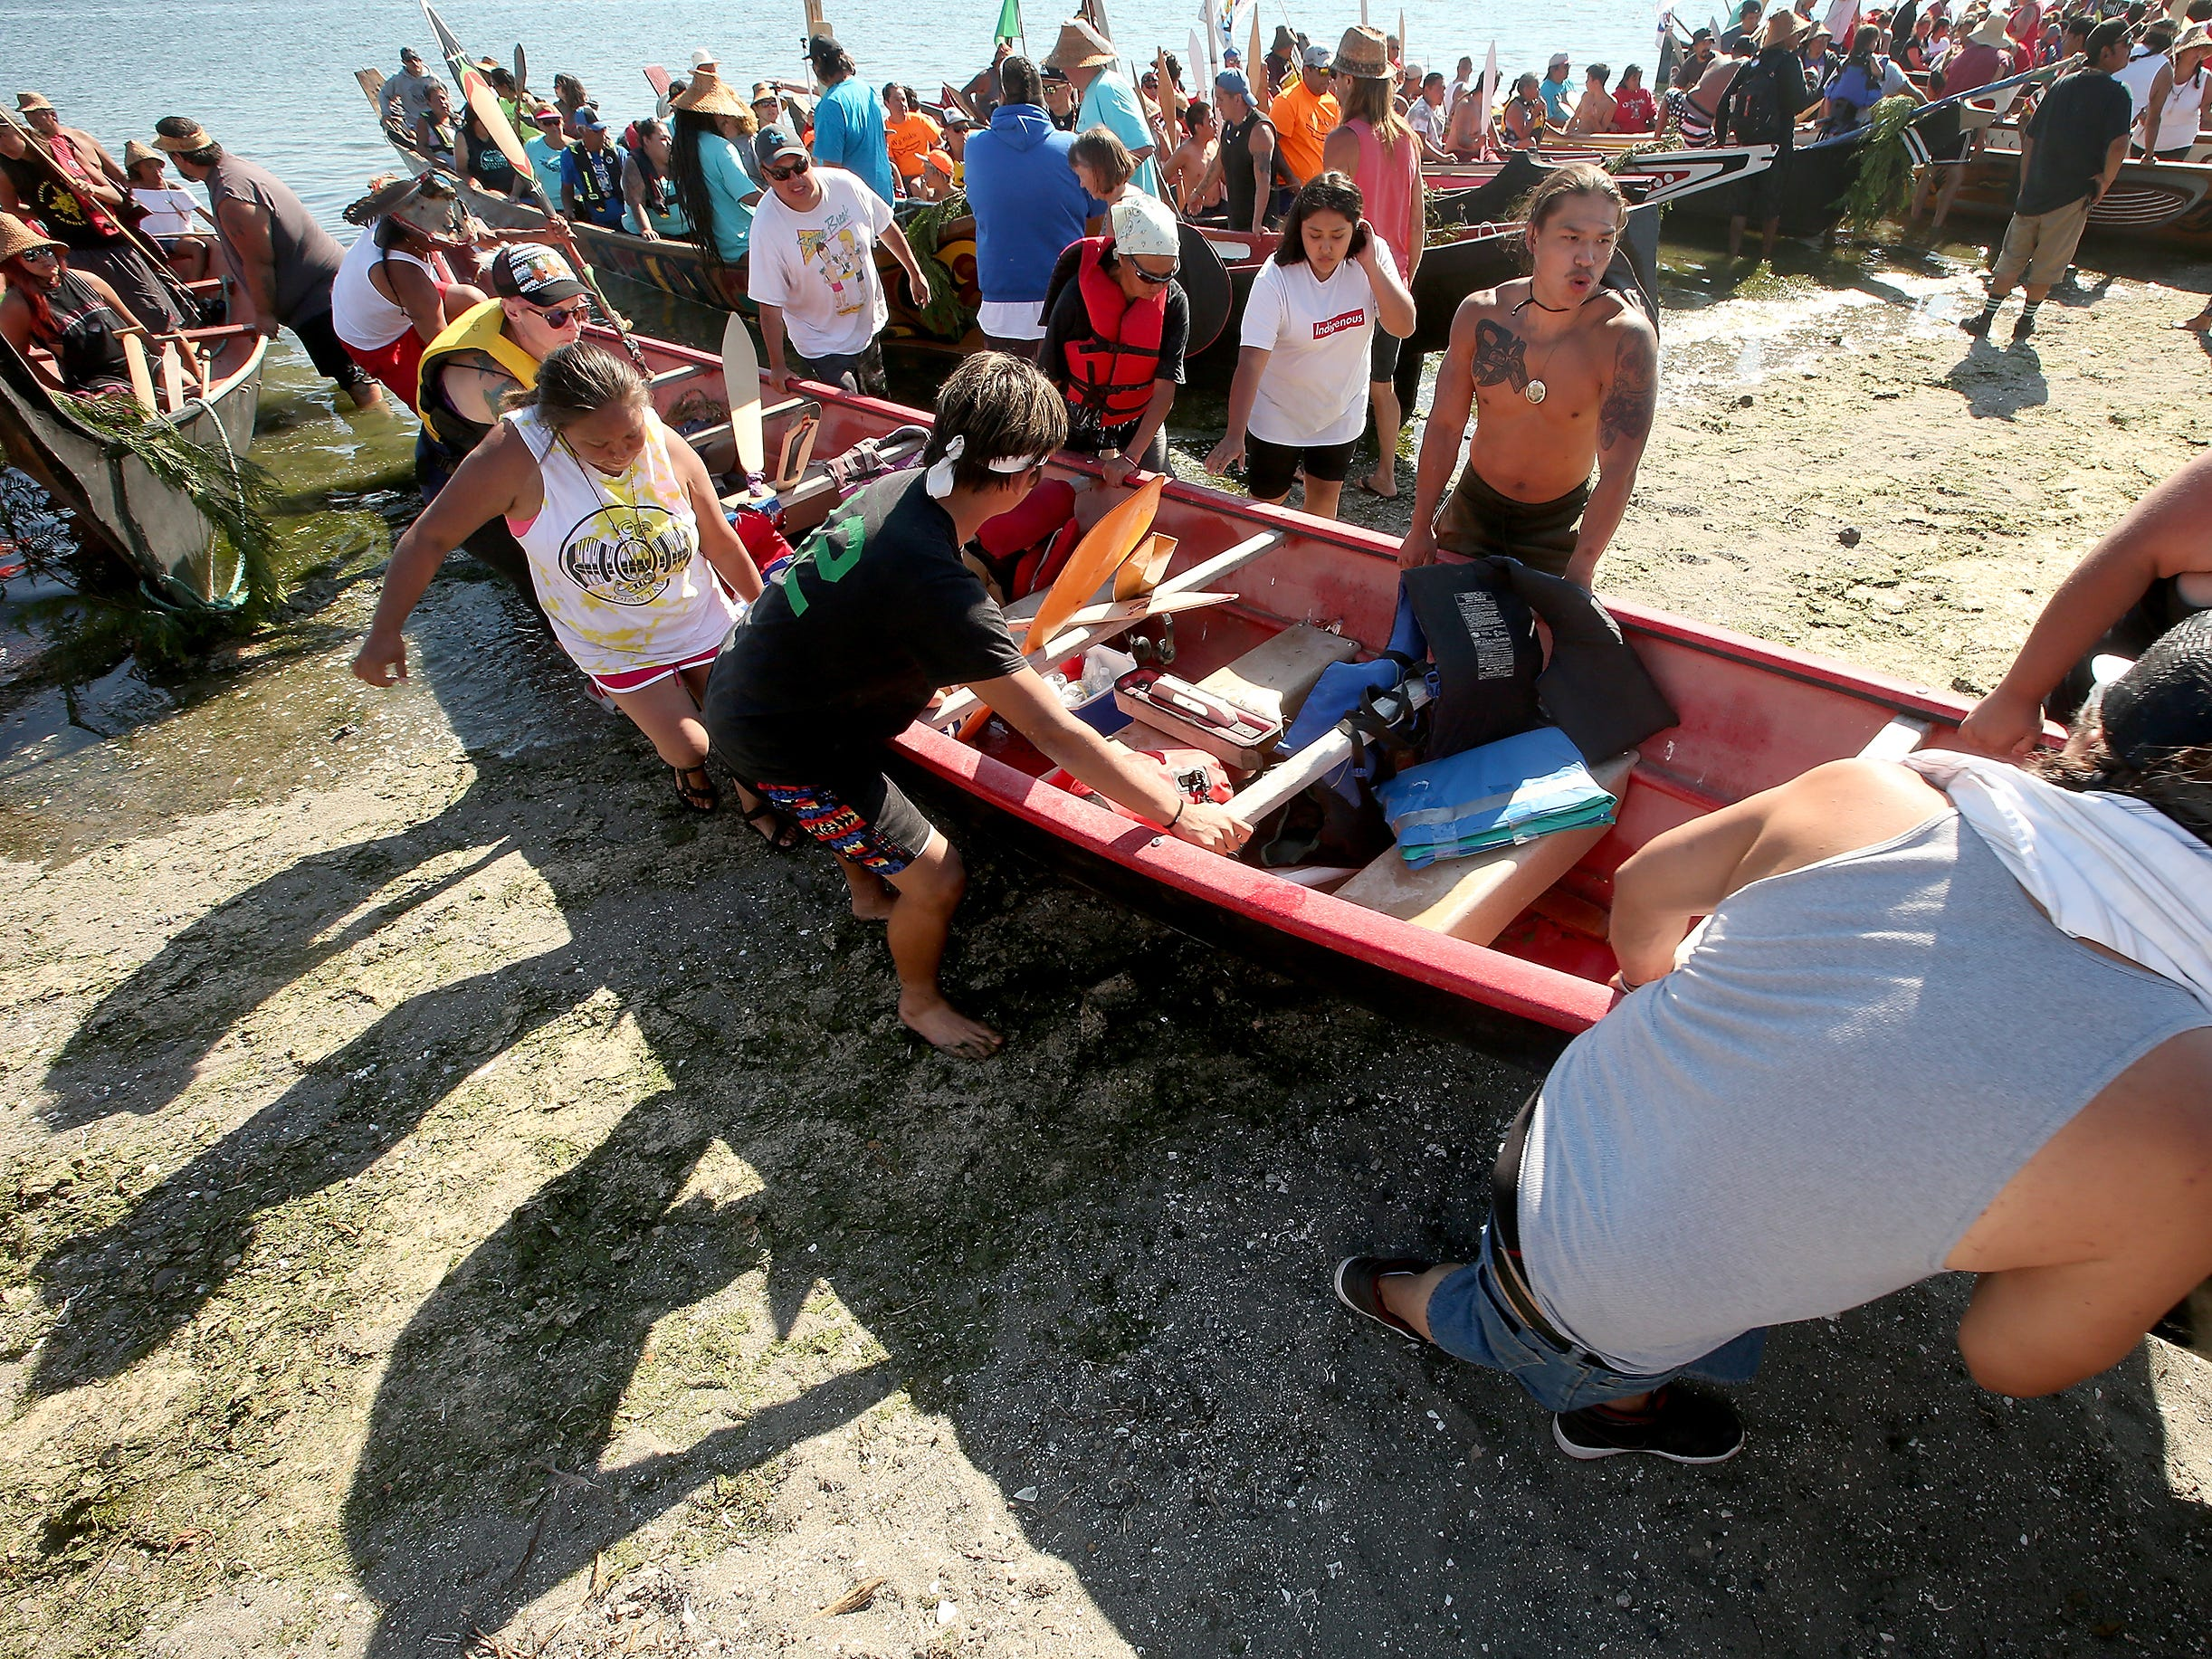 """Canoes are carried further up the beach after the Tribal Canoe Journey """"Paddle to Puyallup"""" landed at Point Julia on Tuesday, July 24, 2018."""